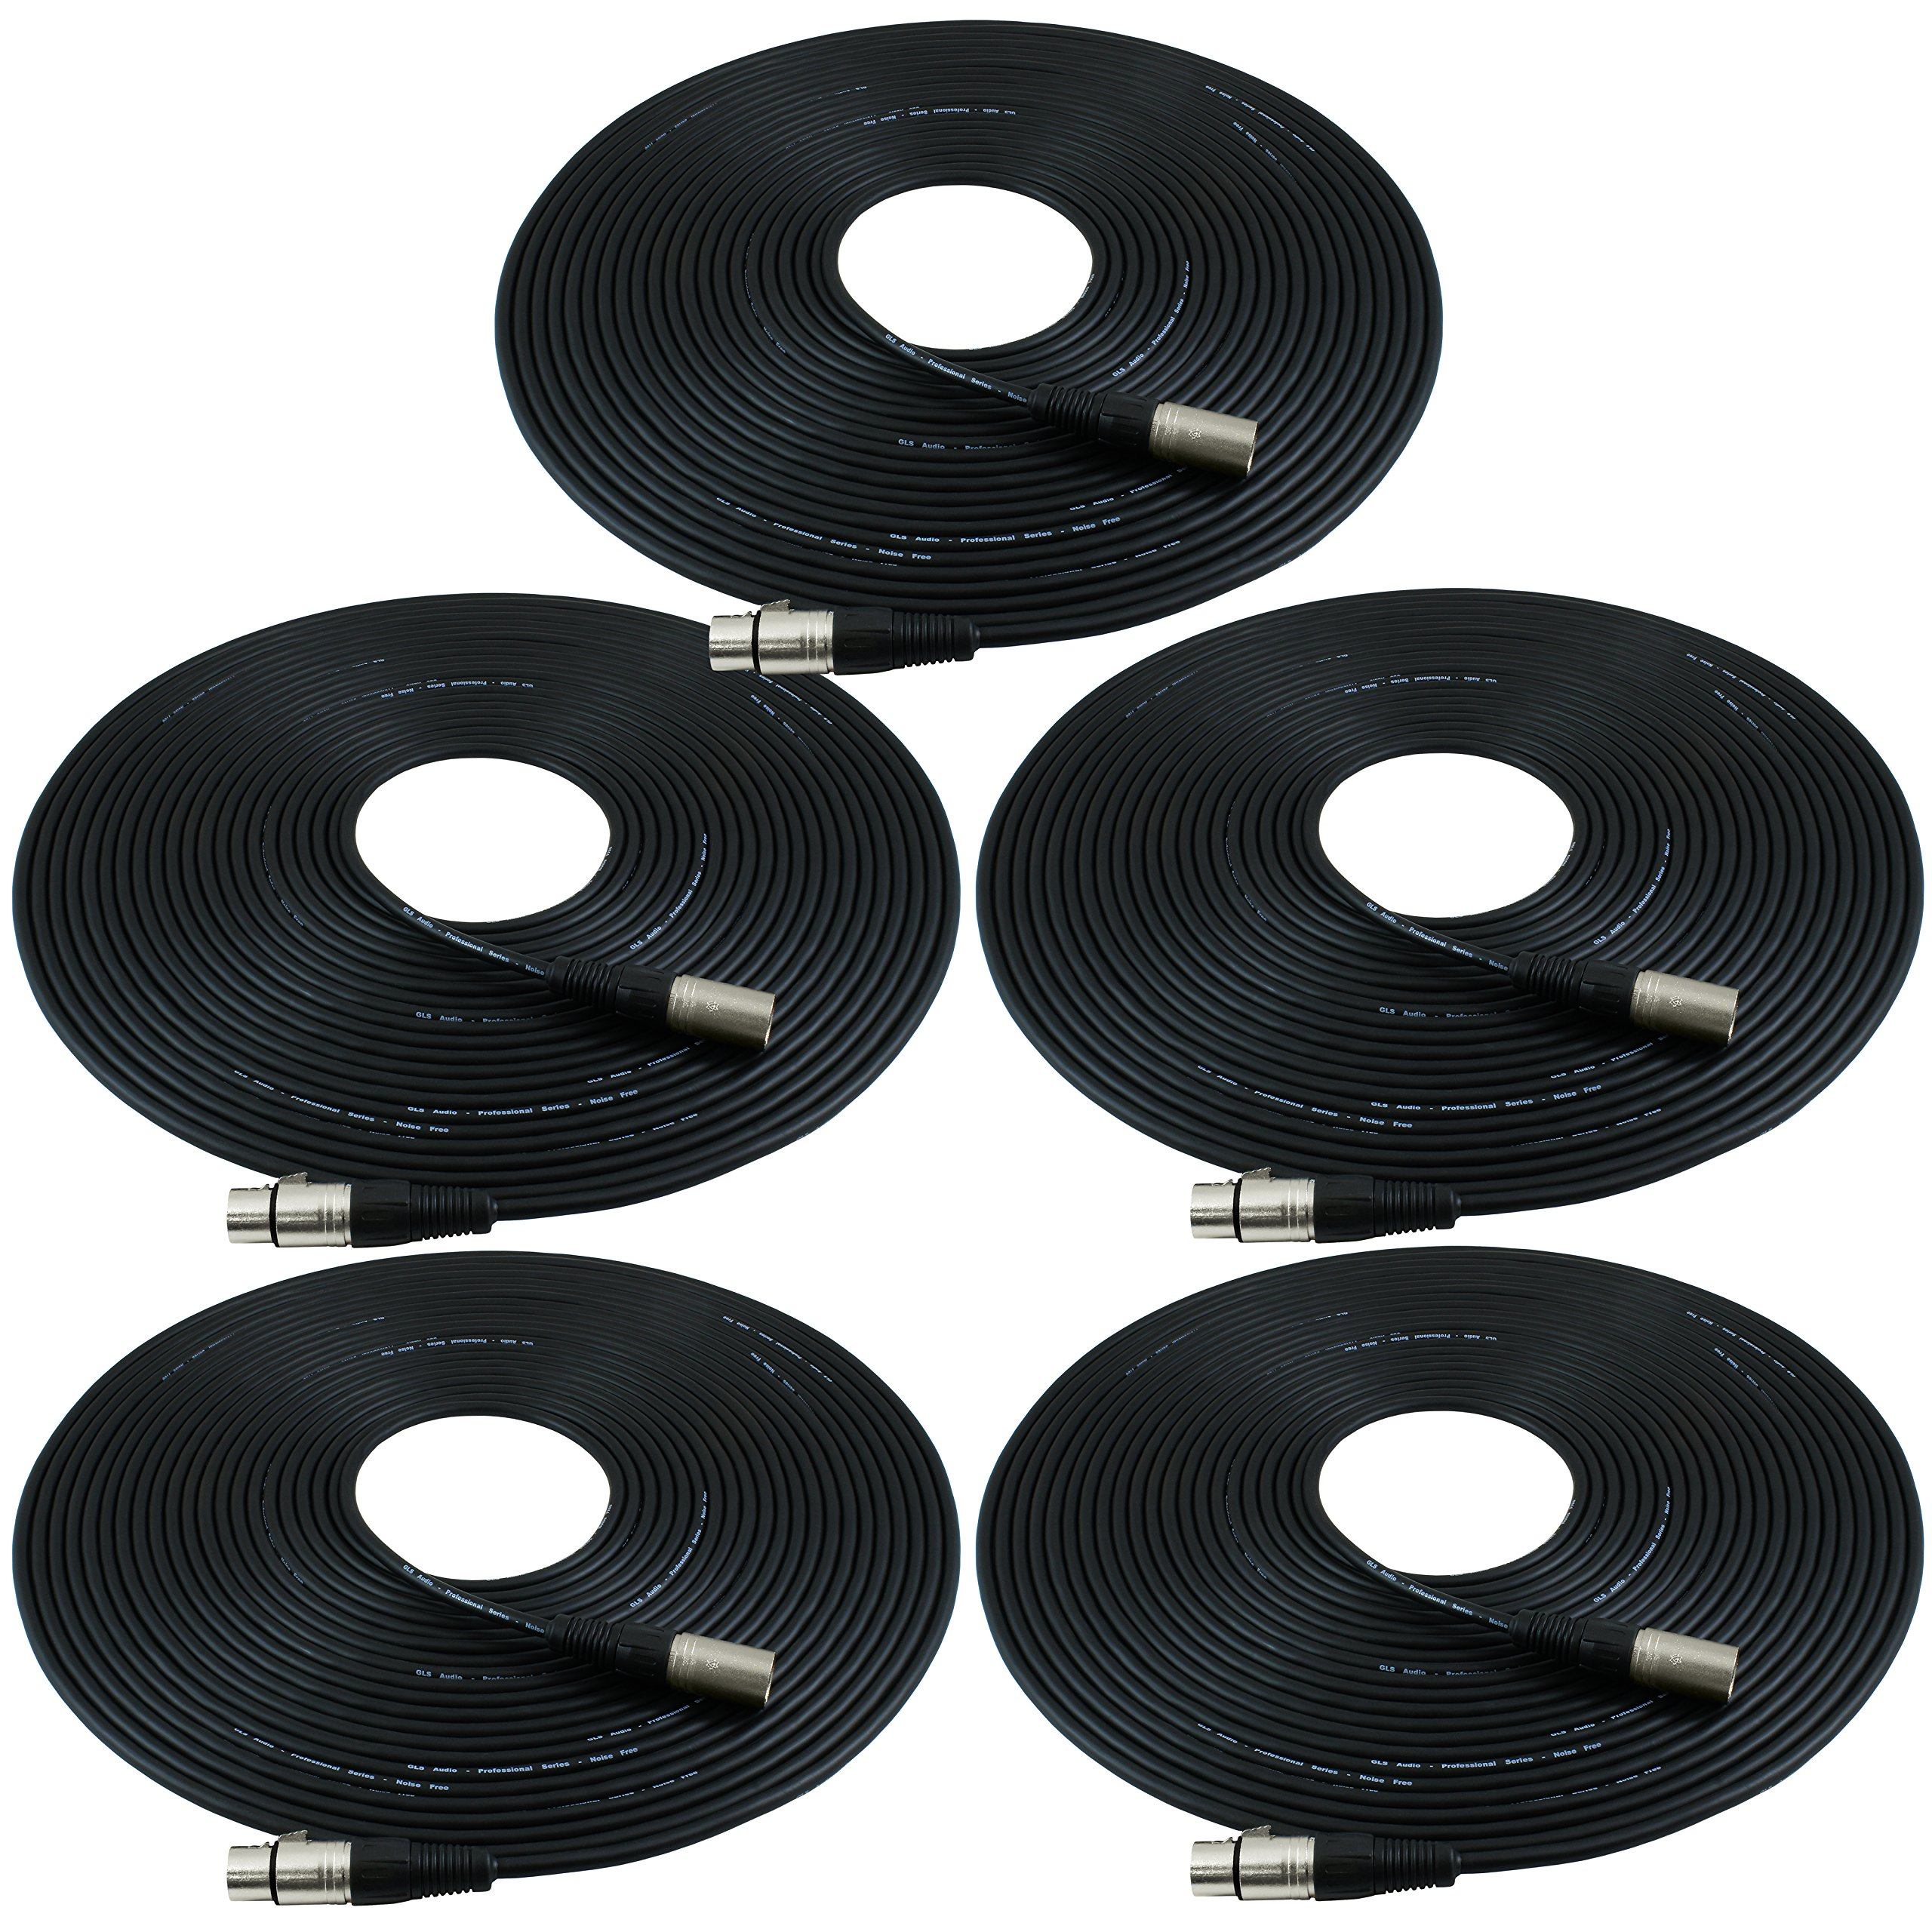 GLS Audio 50ft Mic Cable Patch Cords - XLR Male to XLR Female Black Microphone Cables - 50' Balanced Mike Snake Cord - 5 PACK